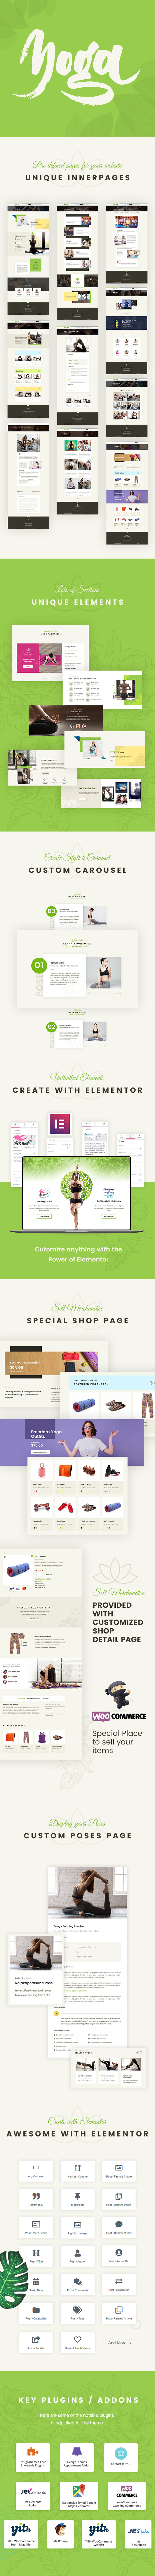 Adhi Yoga WordPress theme, Wellness and Health wordpress theme, wellness theme wordpress free, best health wordpress theme download,